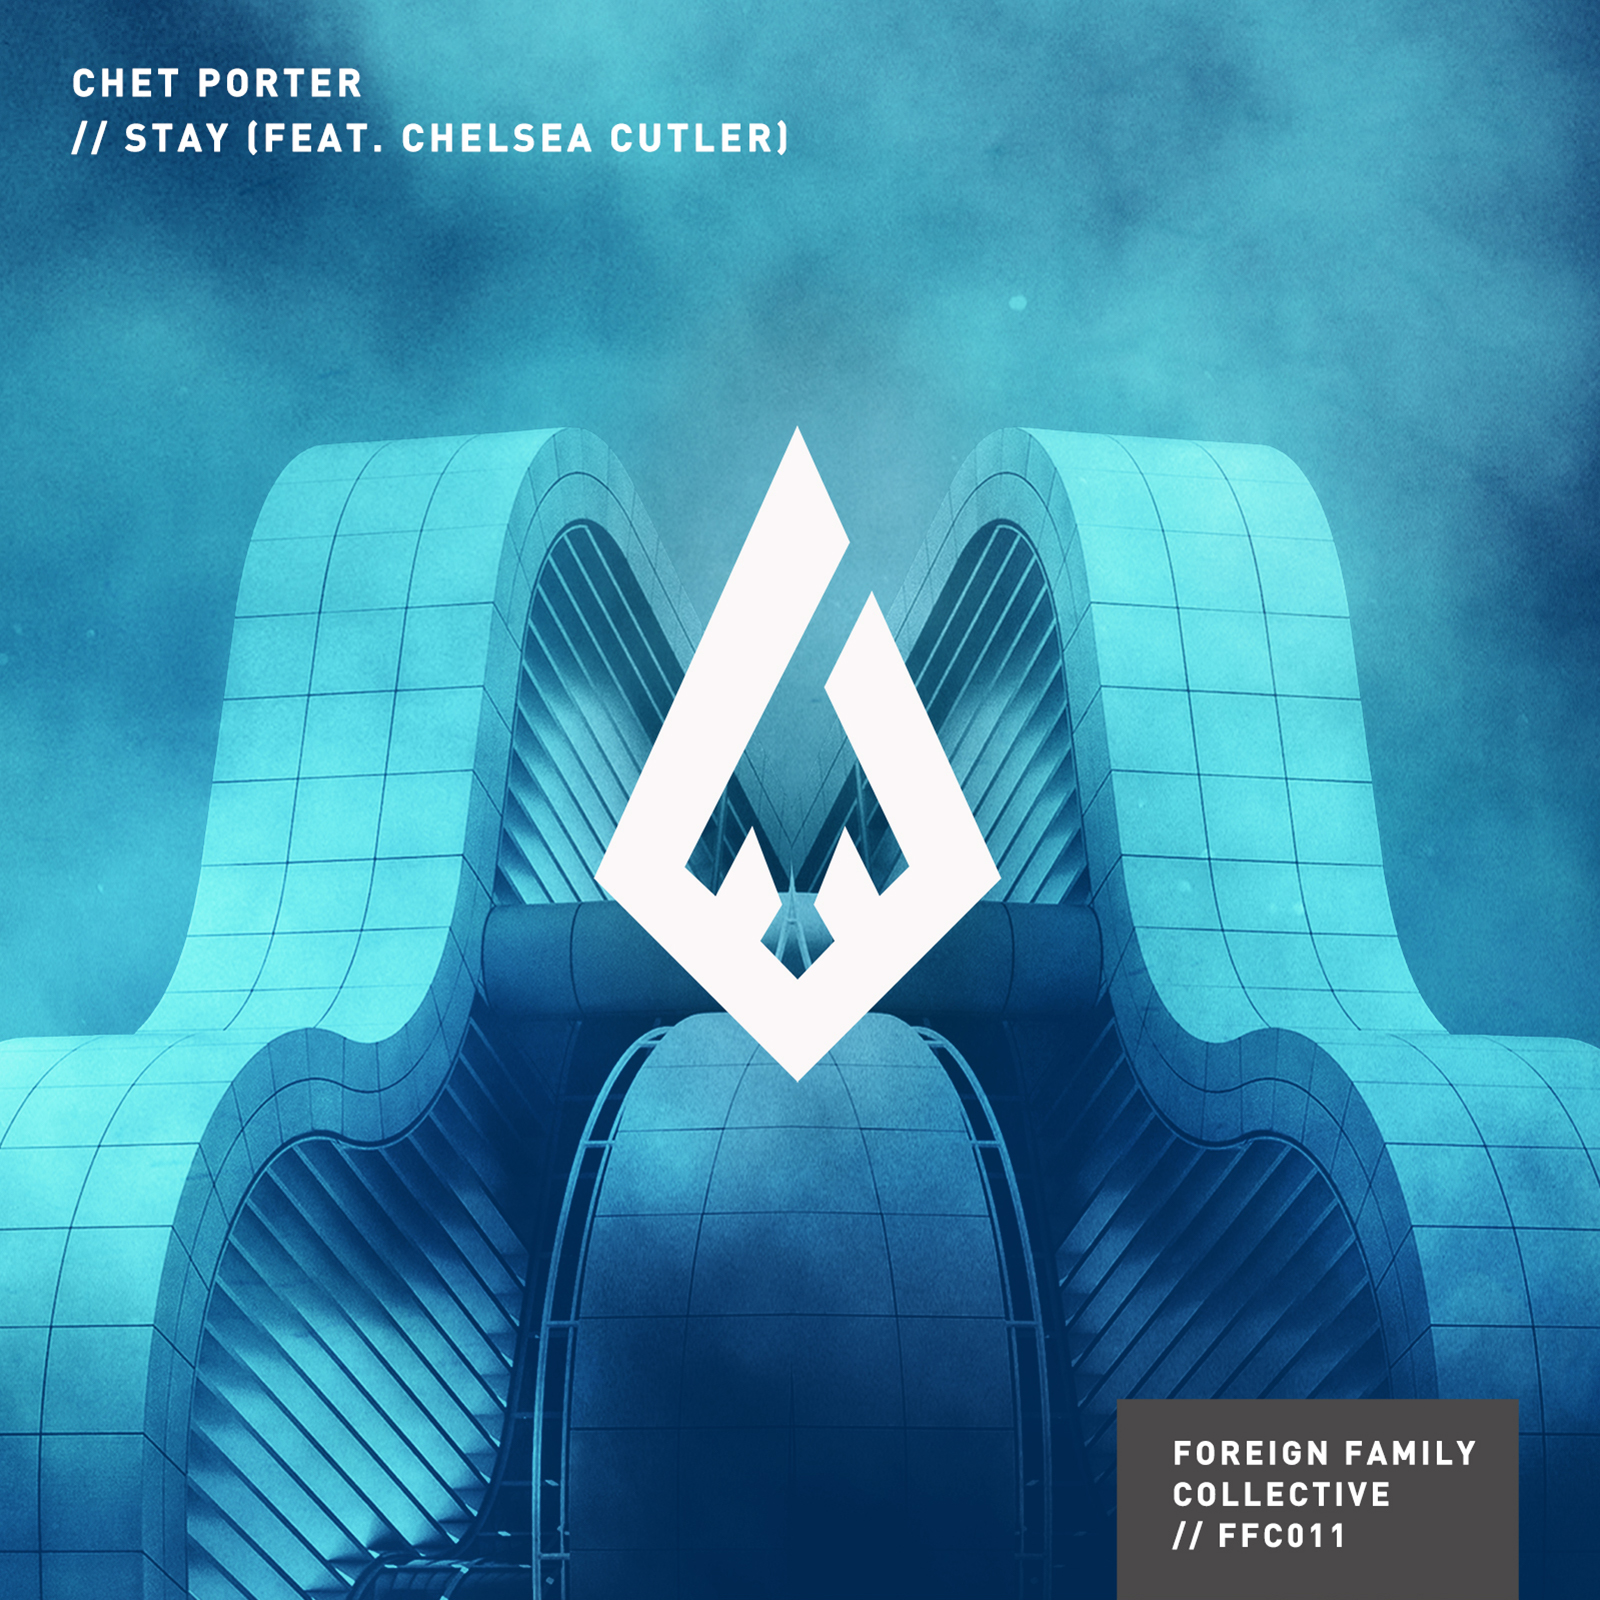 FFC011 Chet Porter - 'Stay' feat. Chelsea Cutler